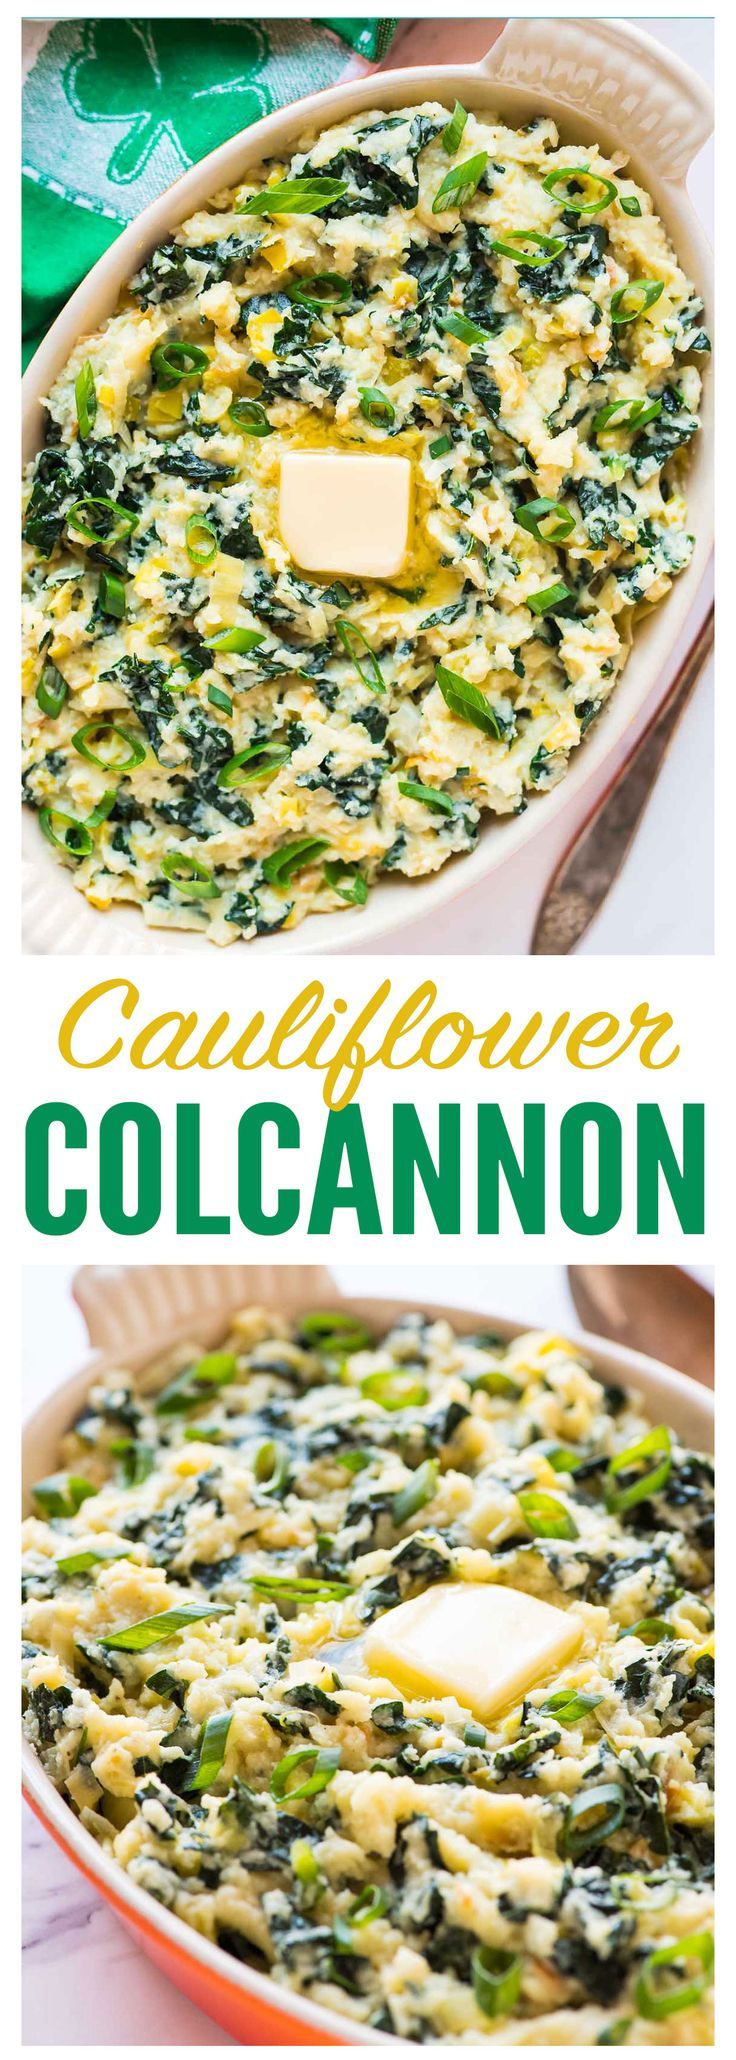 Creamy Mashed Cauliflower Colcannon. A low carb version of traditional Irish potatoes colcannon, made with kale and mashed cauliflower! This healthy Paleo recipe tastes decadent but is completely guilt free. Perfect for St. Patrick's Day or anytime you need a simple side dish. Recipe at http://wellplated.com | /wellplated/